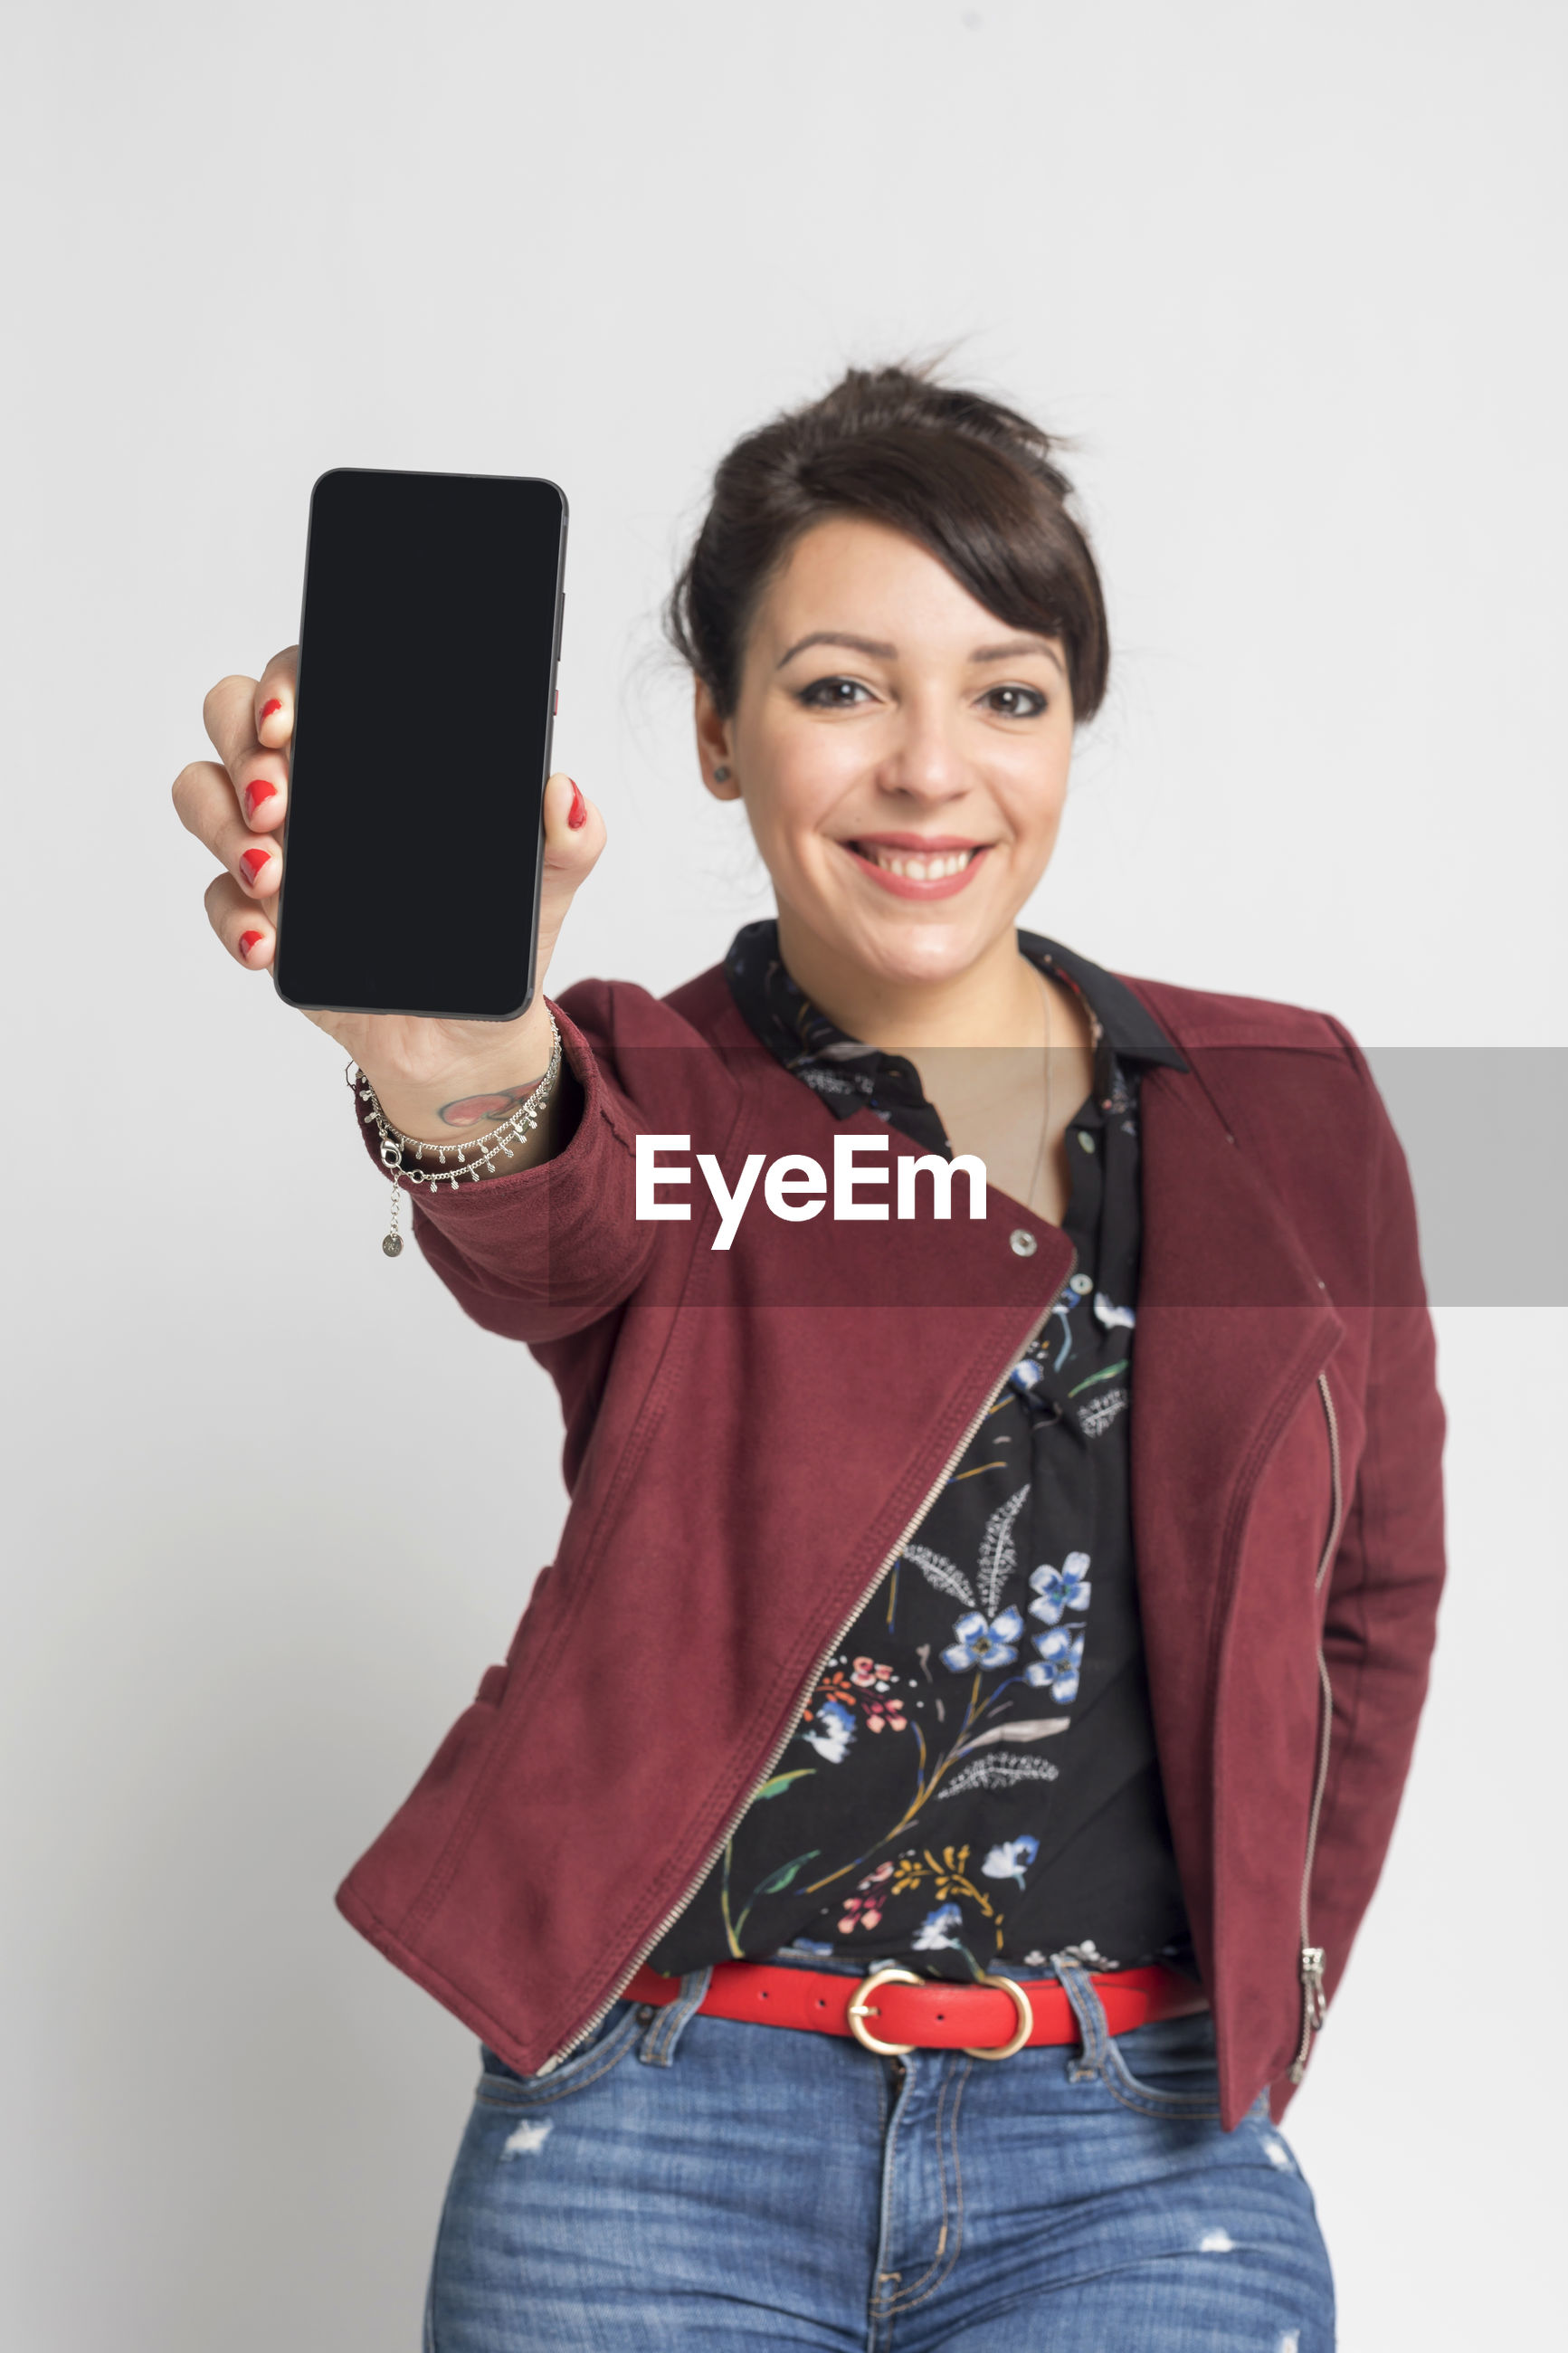 Portrait of smiling woman holding mobile phone while standing against white background